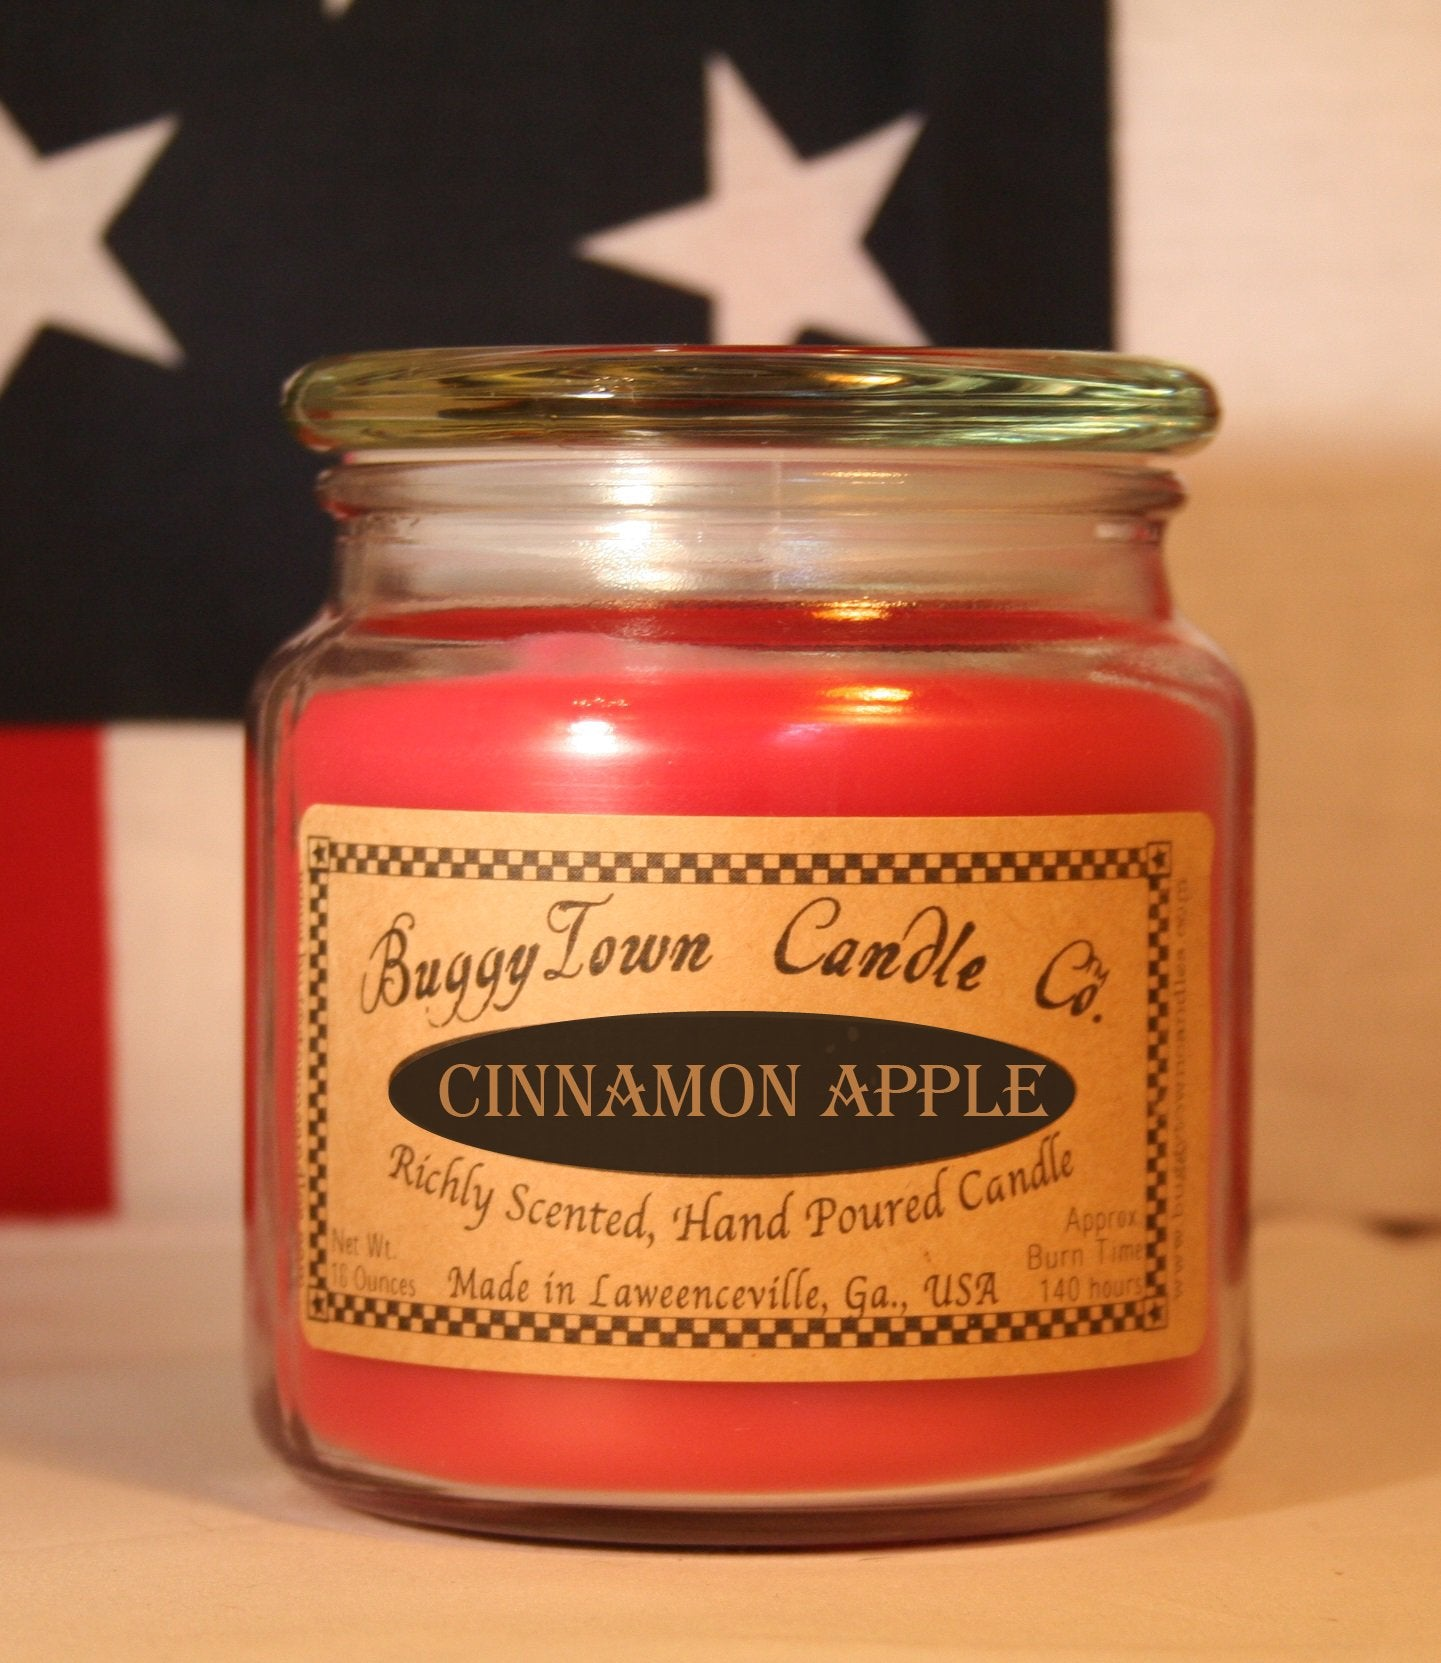 Cinnamon Apple Candles